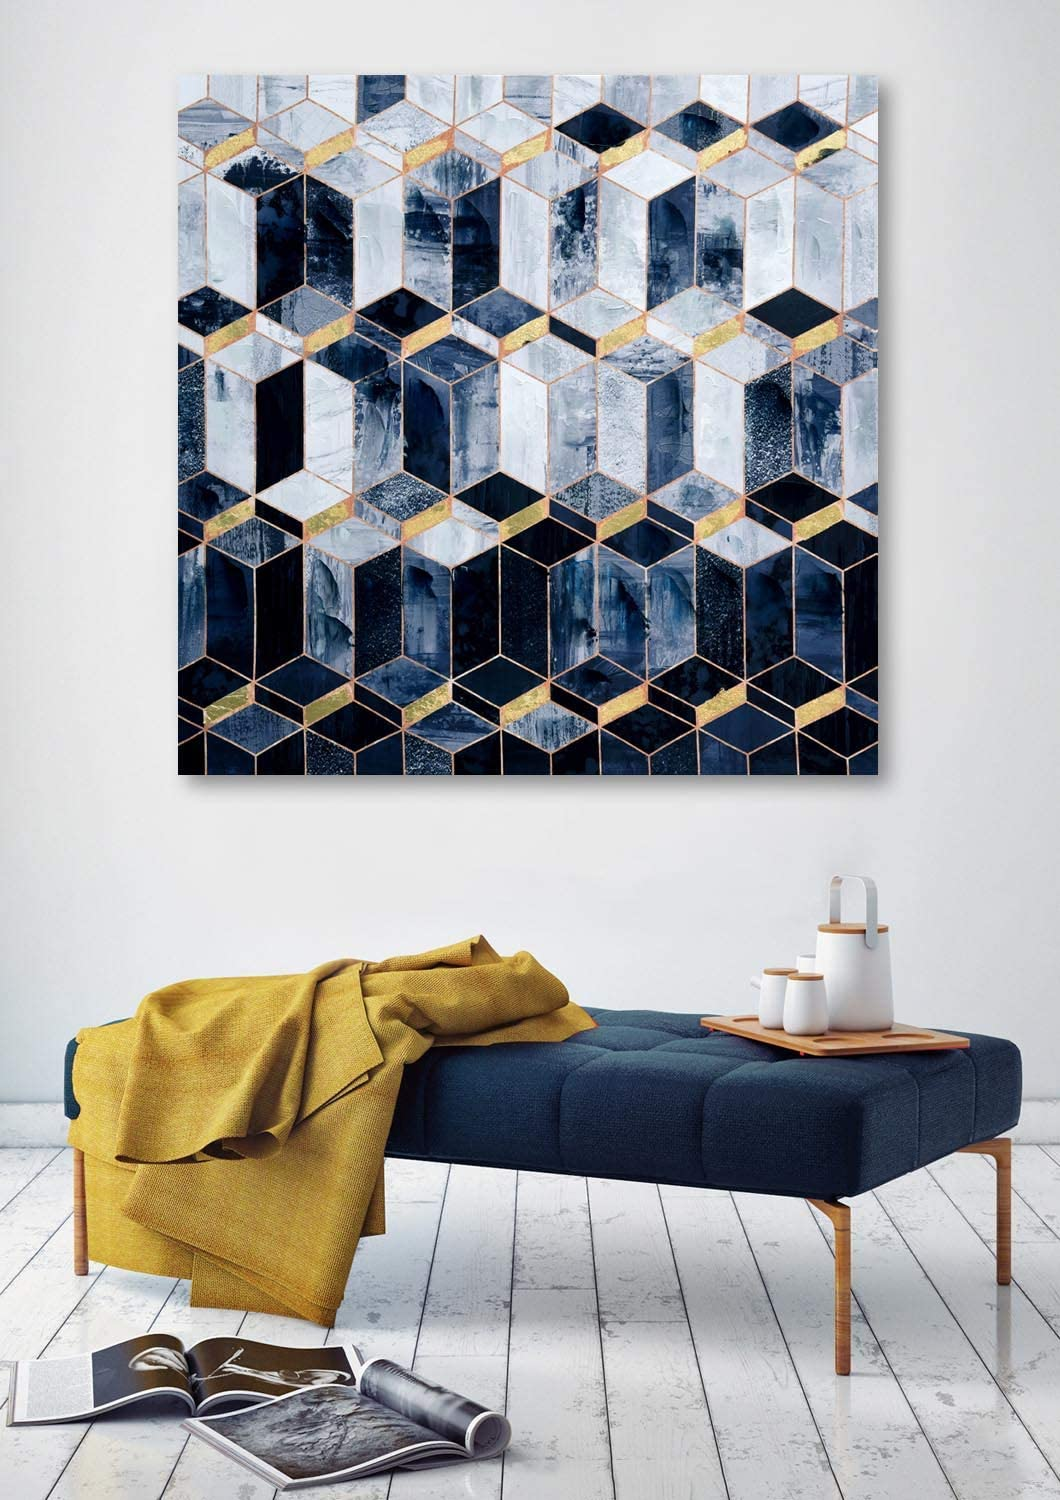 Framed Abstarct Canvas Prints Wall Art for Home, Modern Abstract Oil Paintings, 3D Hand Painted Navy Blue Geometric Patterns Picttures for Living Room Bedroom, Stretched Ready to Hang 32x32 Inch